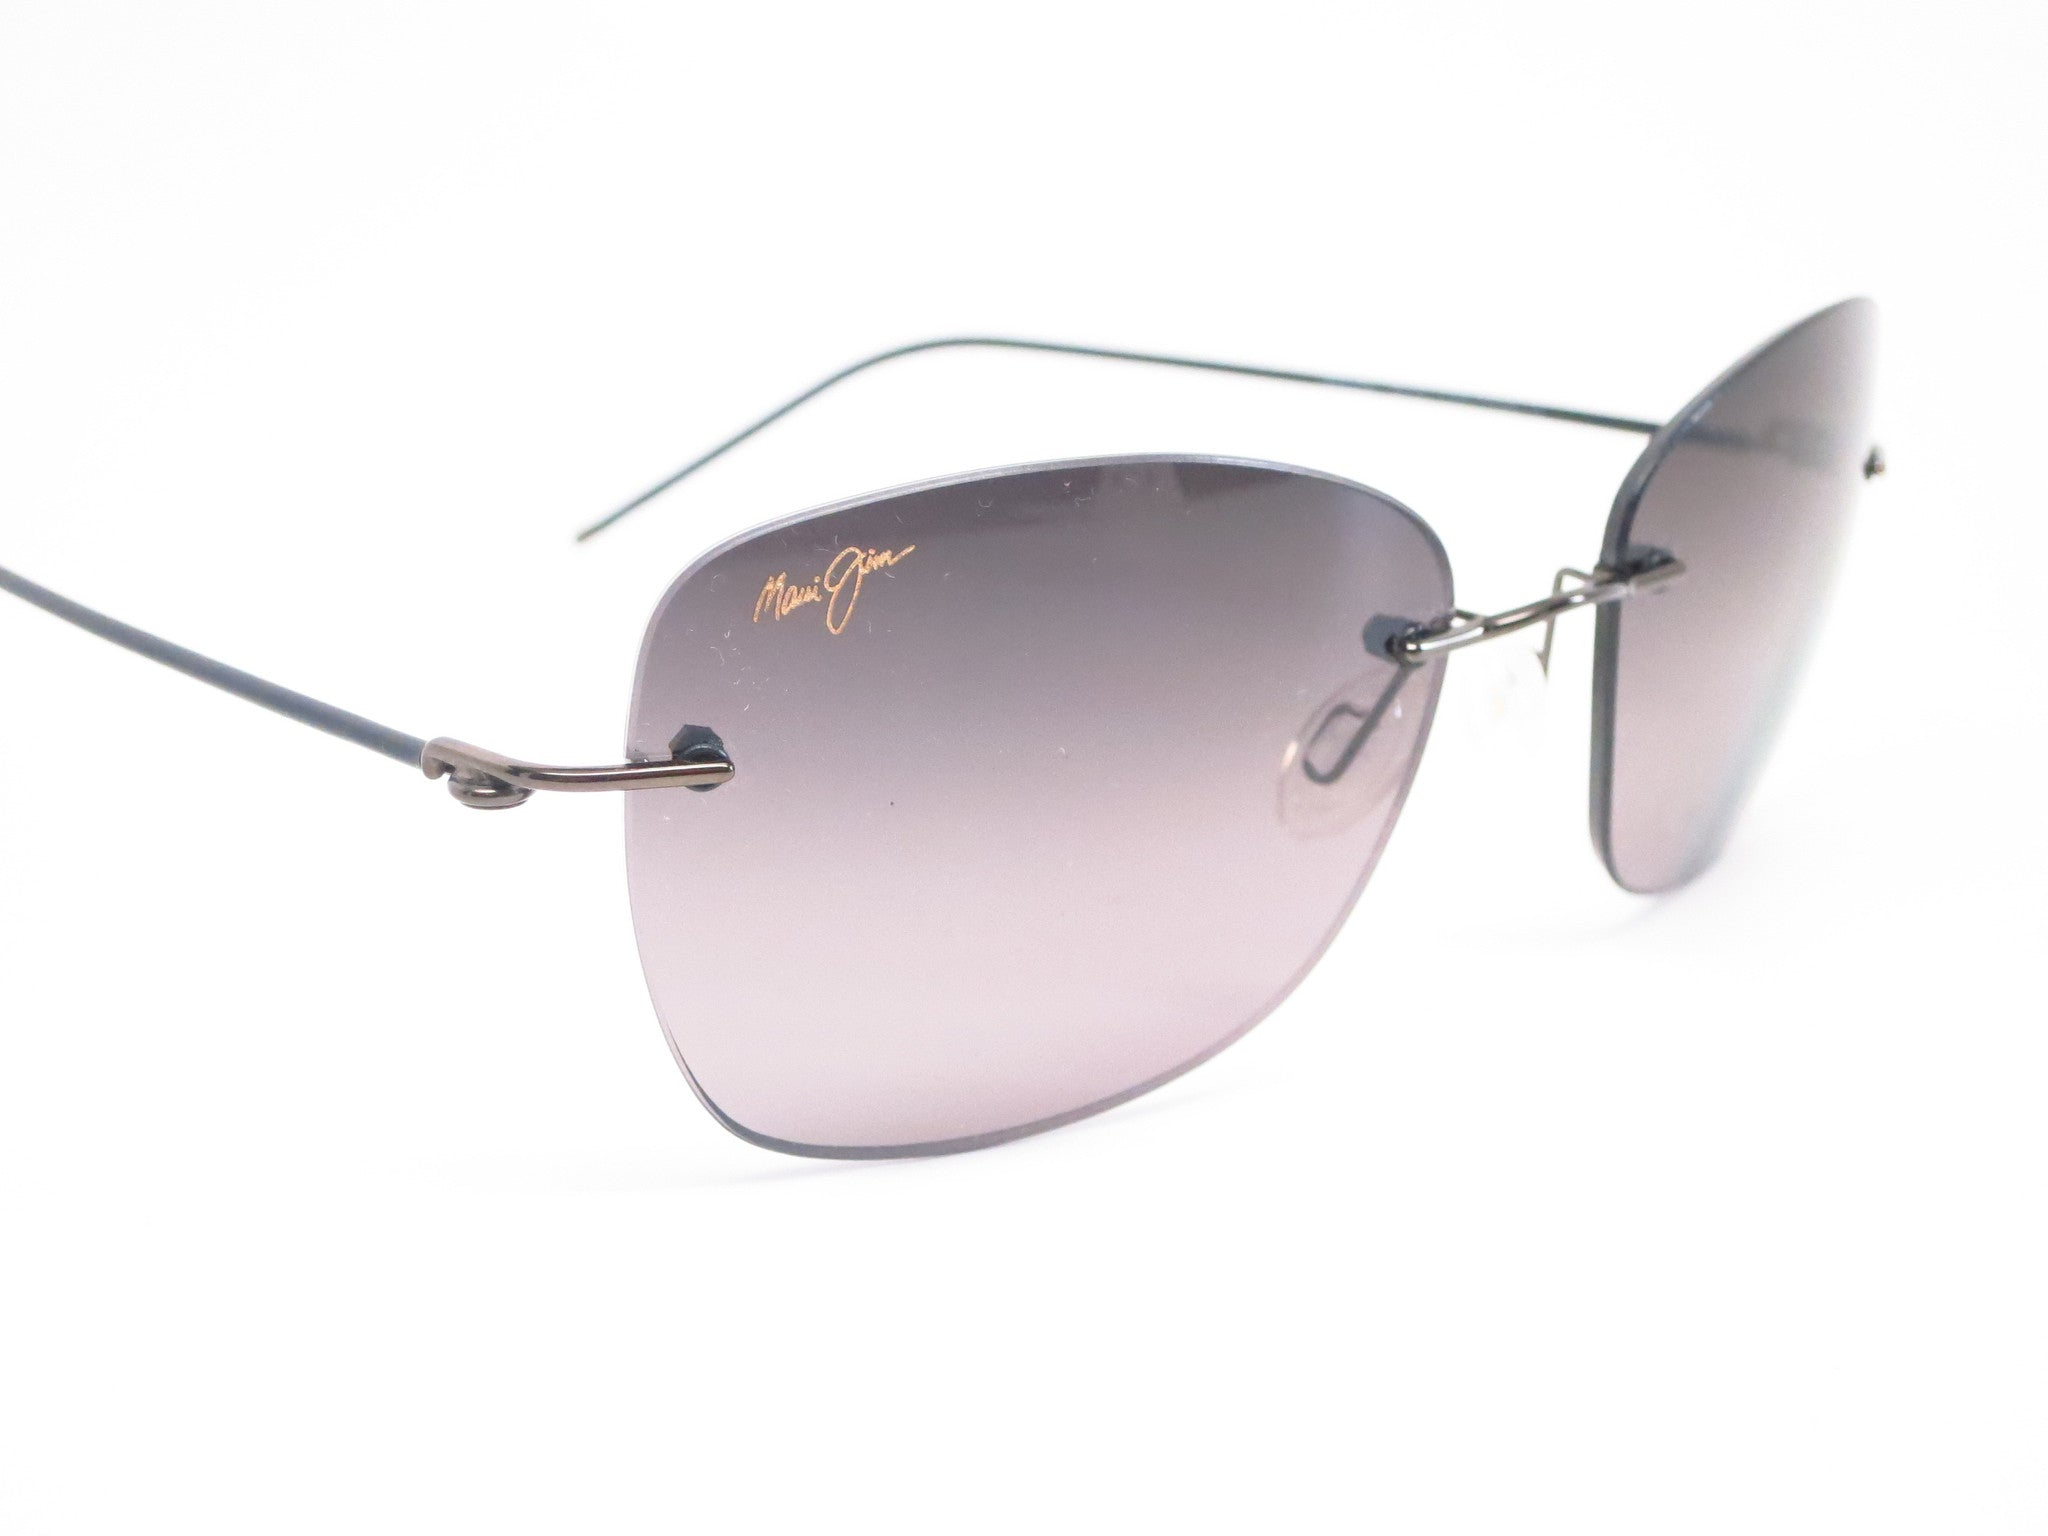 a9afc3a55f32 ... Maui Jim Apapane MJ GS717-02D Dark Gunmetal/Black sleeve Polarized  Sunglasses - Eye ...